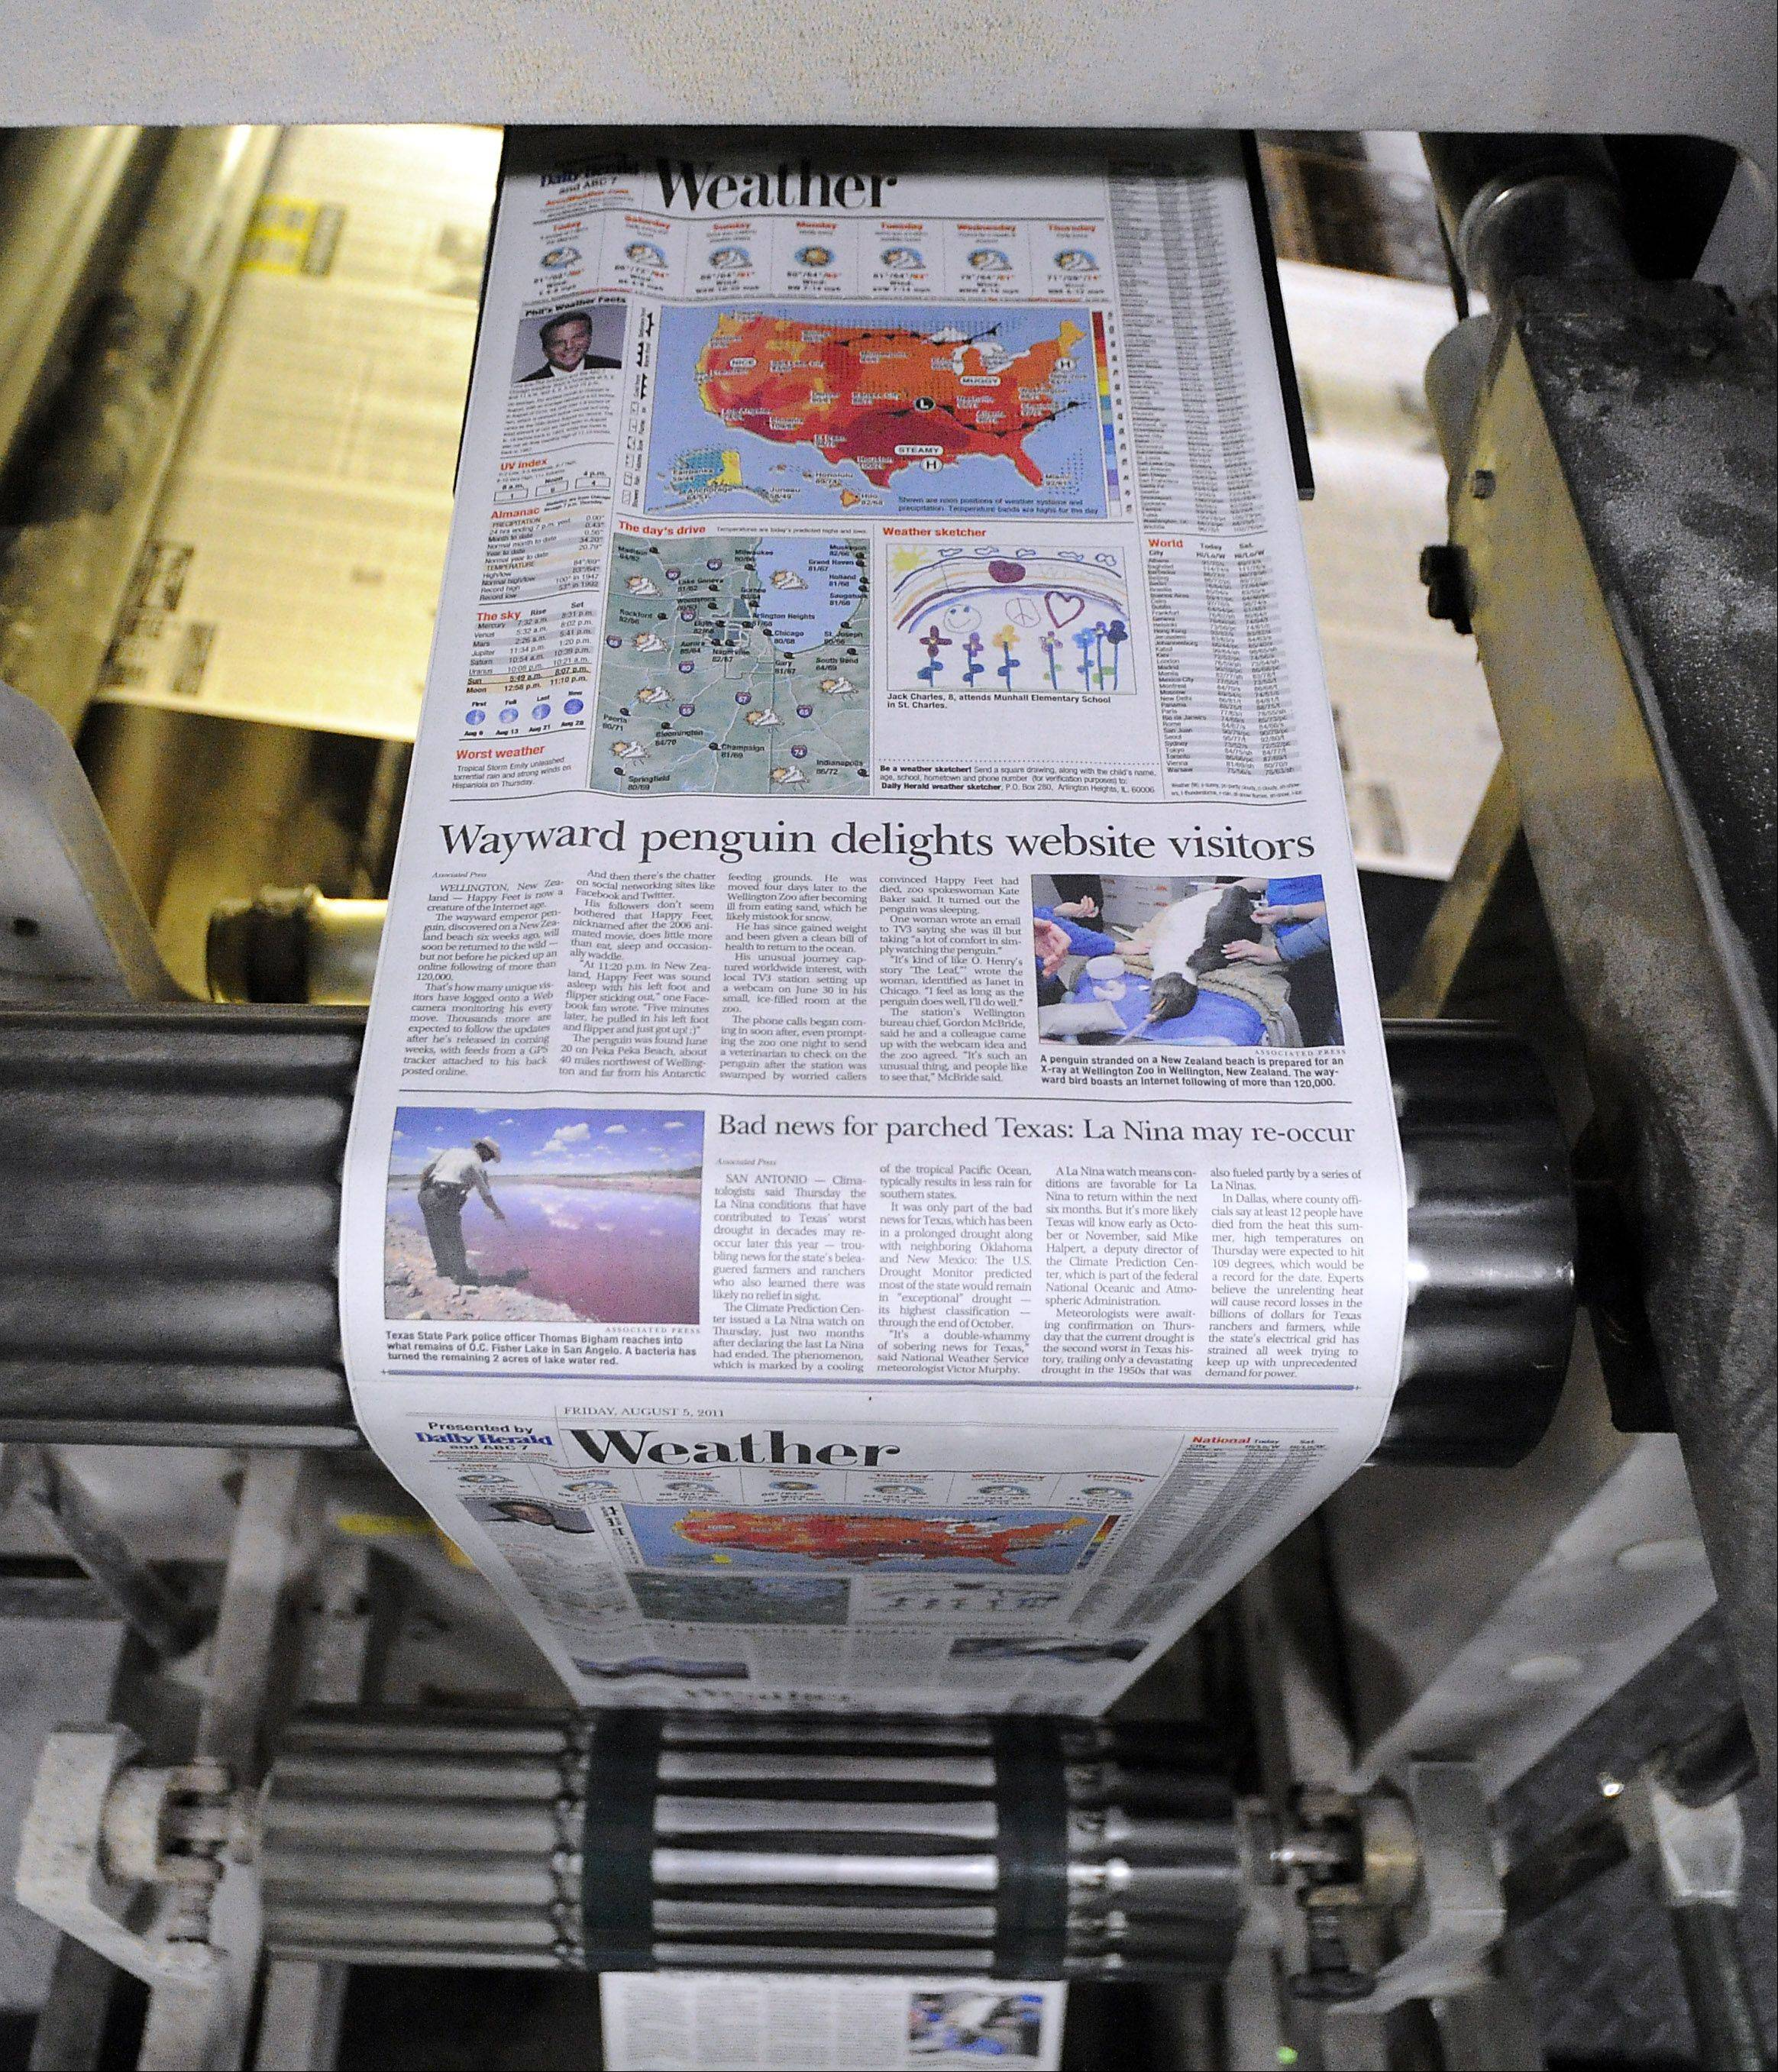 The crisp, colorful pages of the Daily Herald newspaper roll off the press.